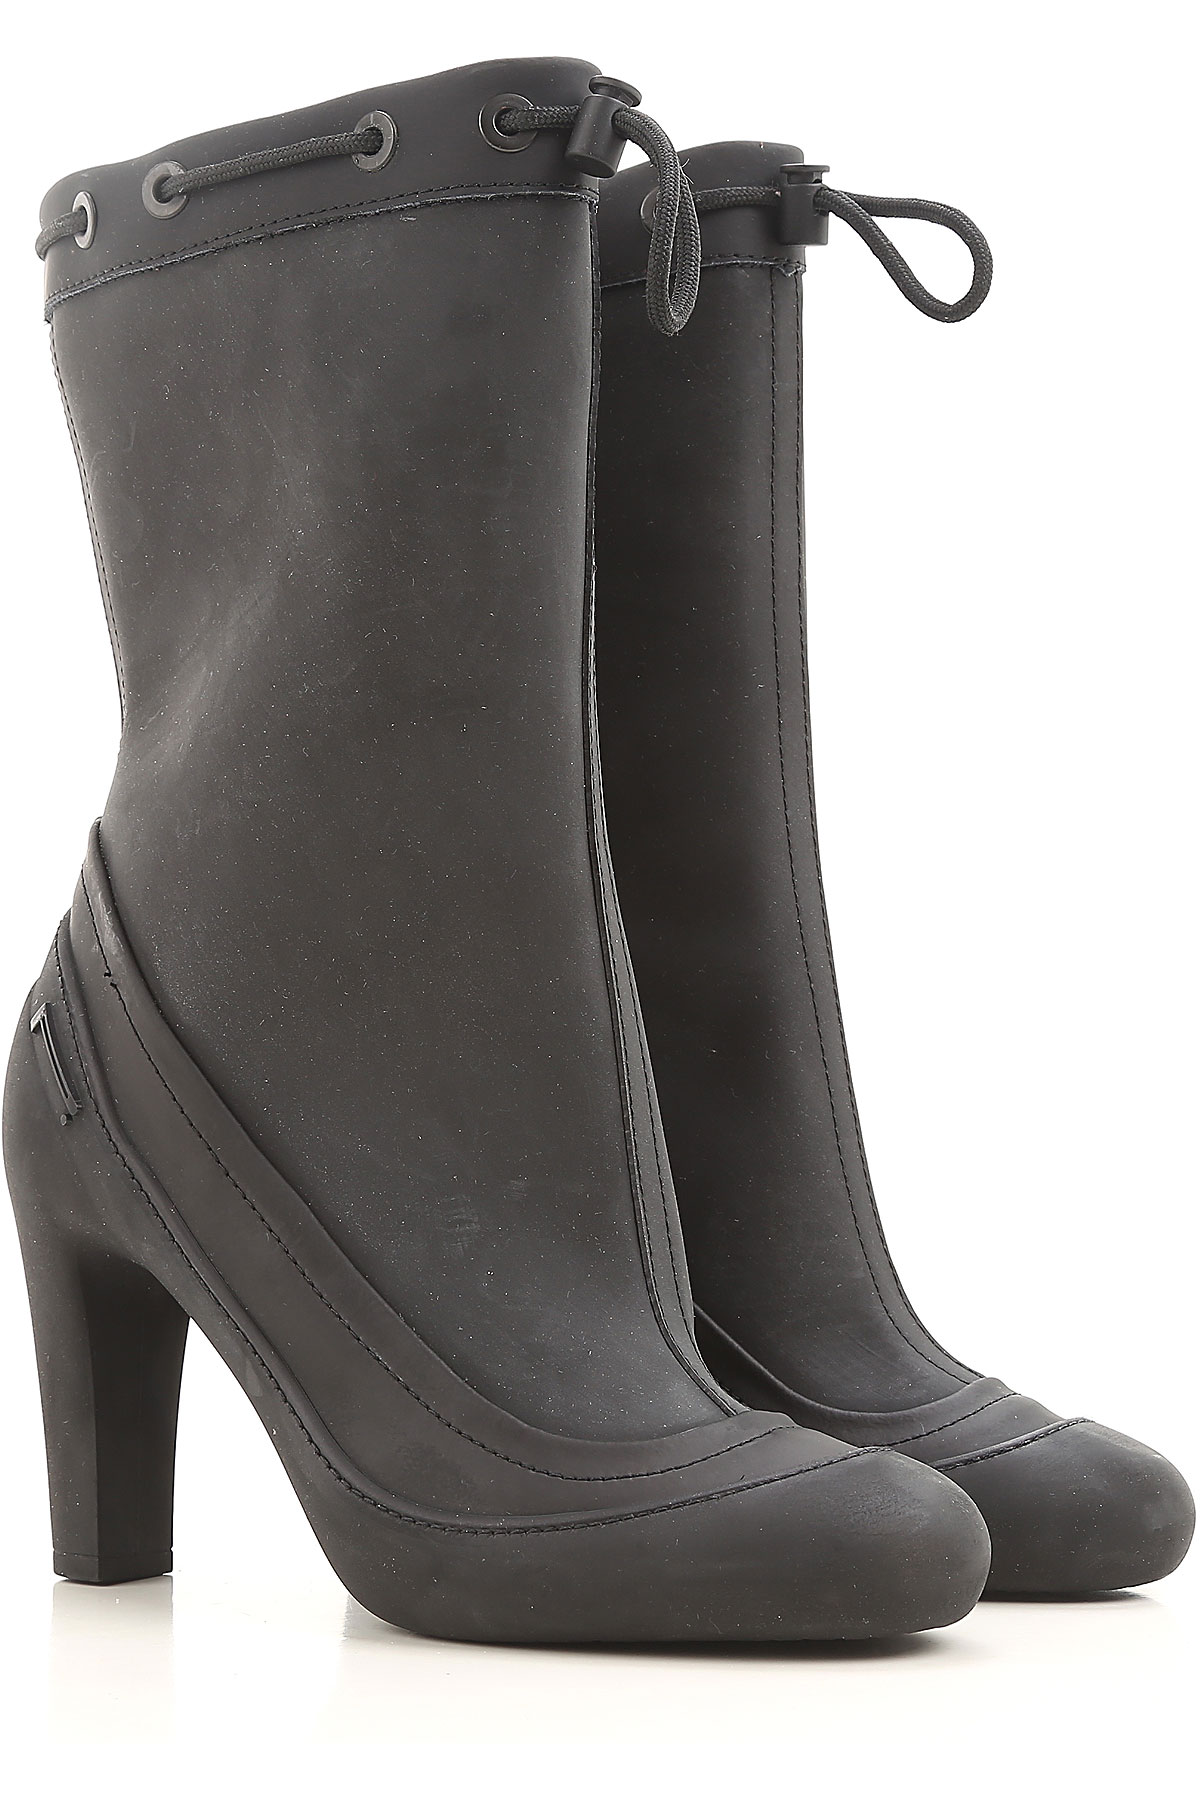 Pirelli Boots for Women, Booties On Sale in Outlet, Black, Rubber, 2019, EUR 35 - UK 2 - USA 4.5 EUR 36 - UK 3 - USA 5.5